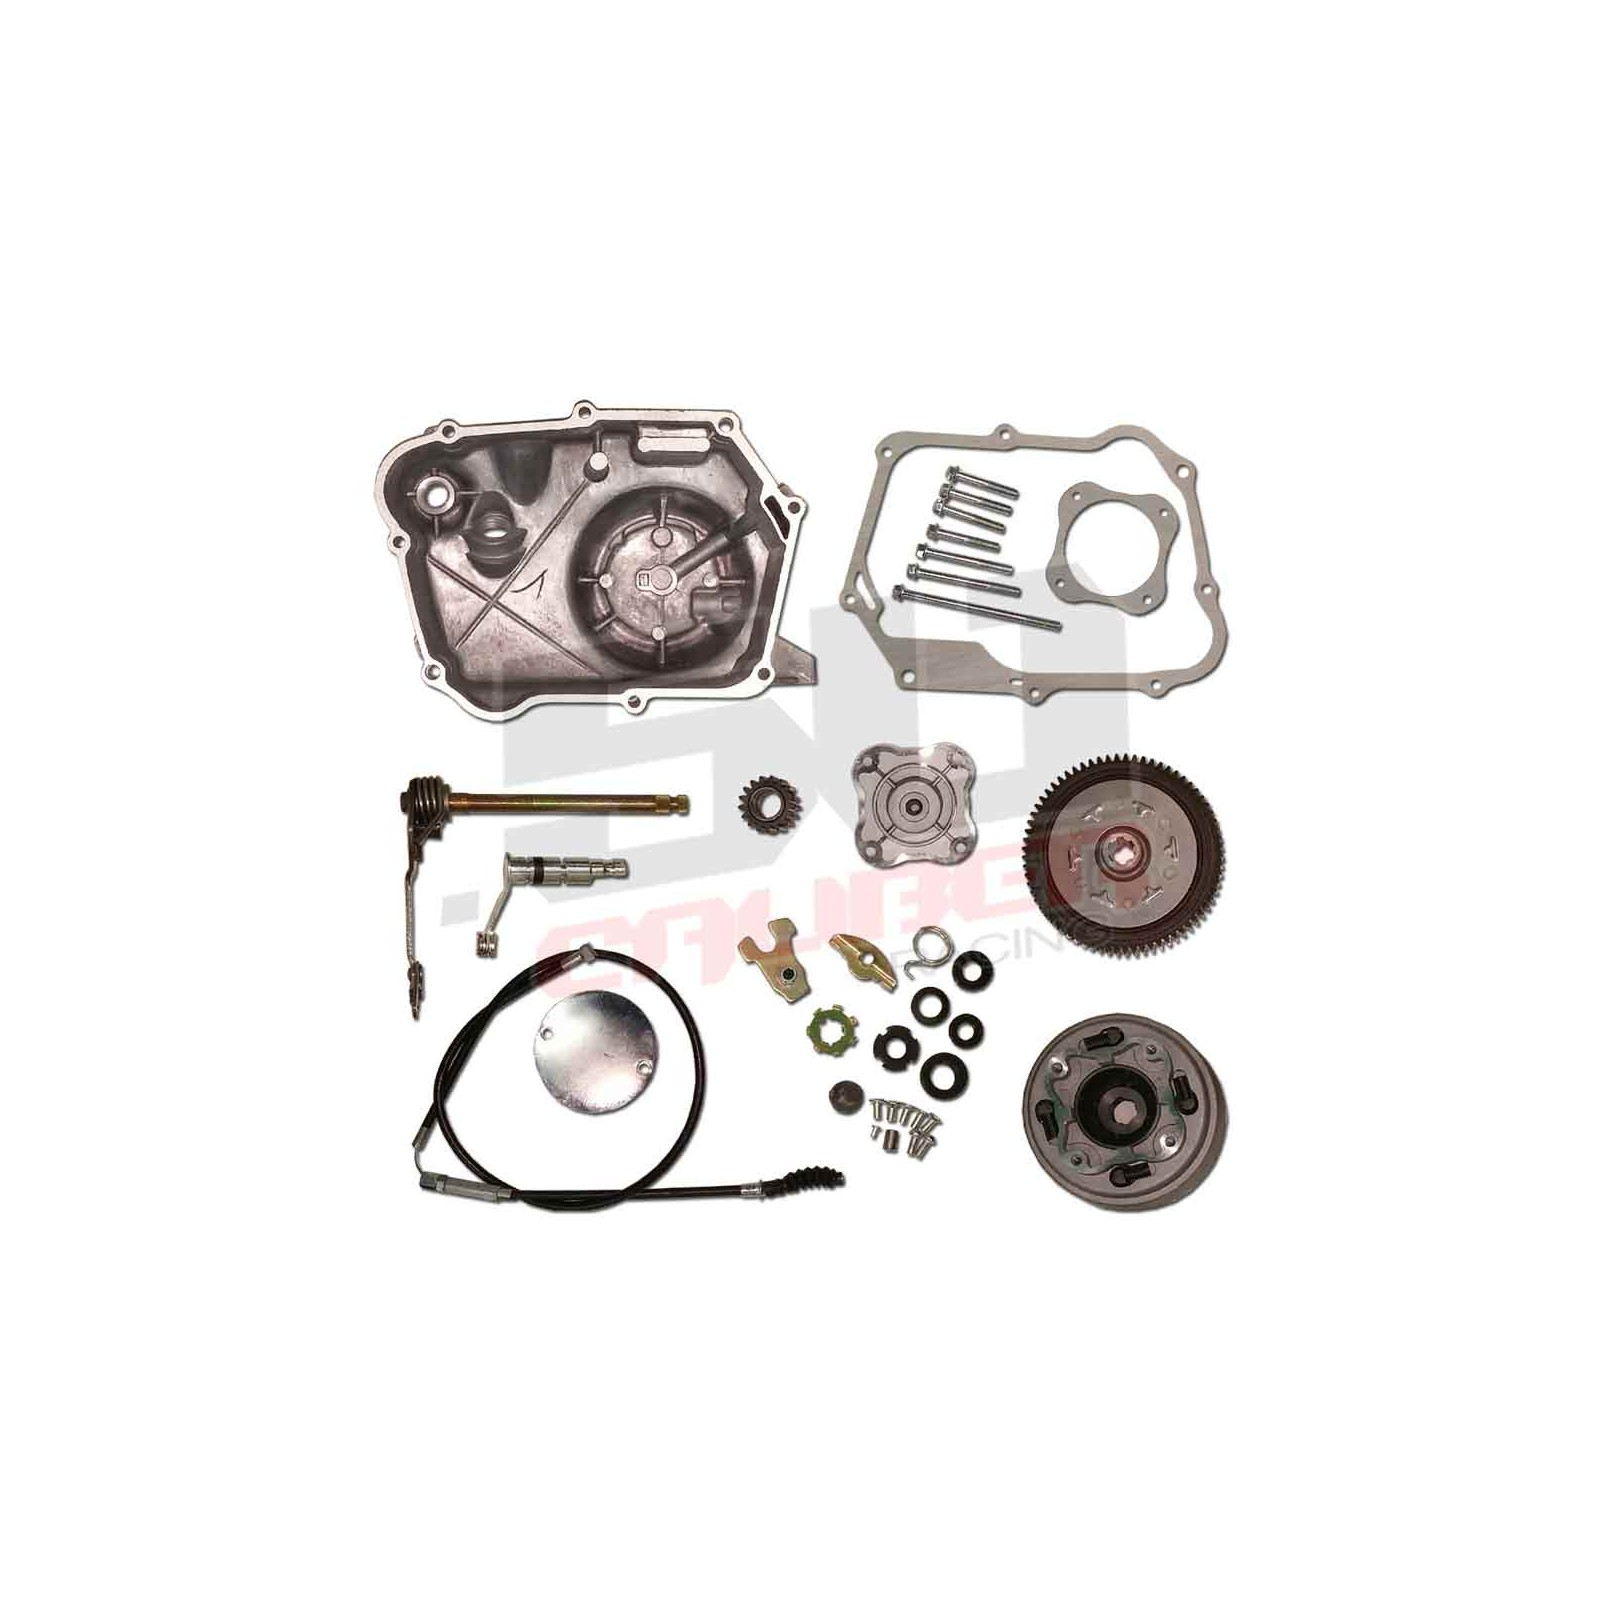 Honda Xr50 Parts Diagram Wiring Electricity Basics 101 Xr50r 50 Manual Clutch Kit For Crf50 Z50 Pit Bikes Rh 50caliberracing Com Xr 2002